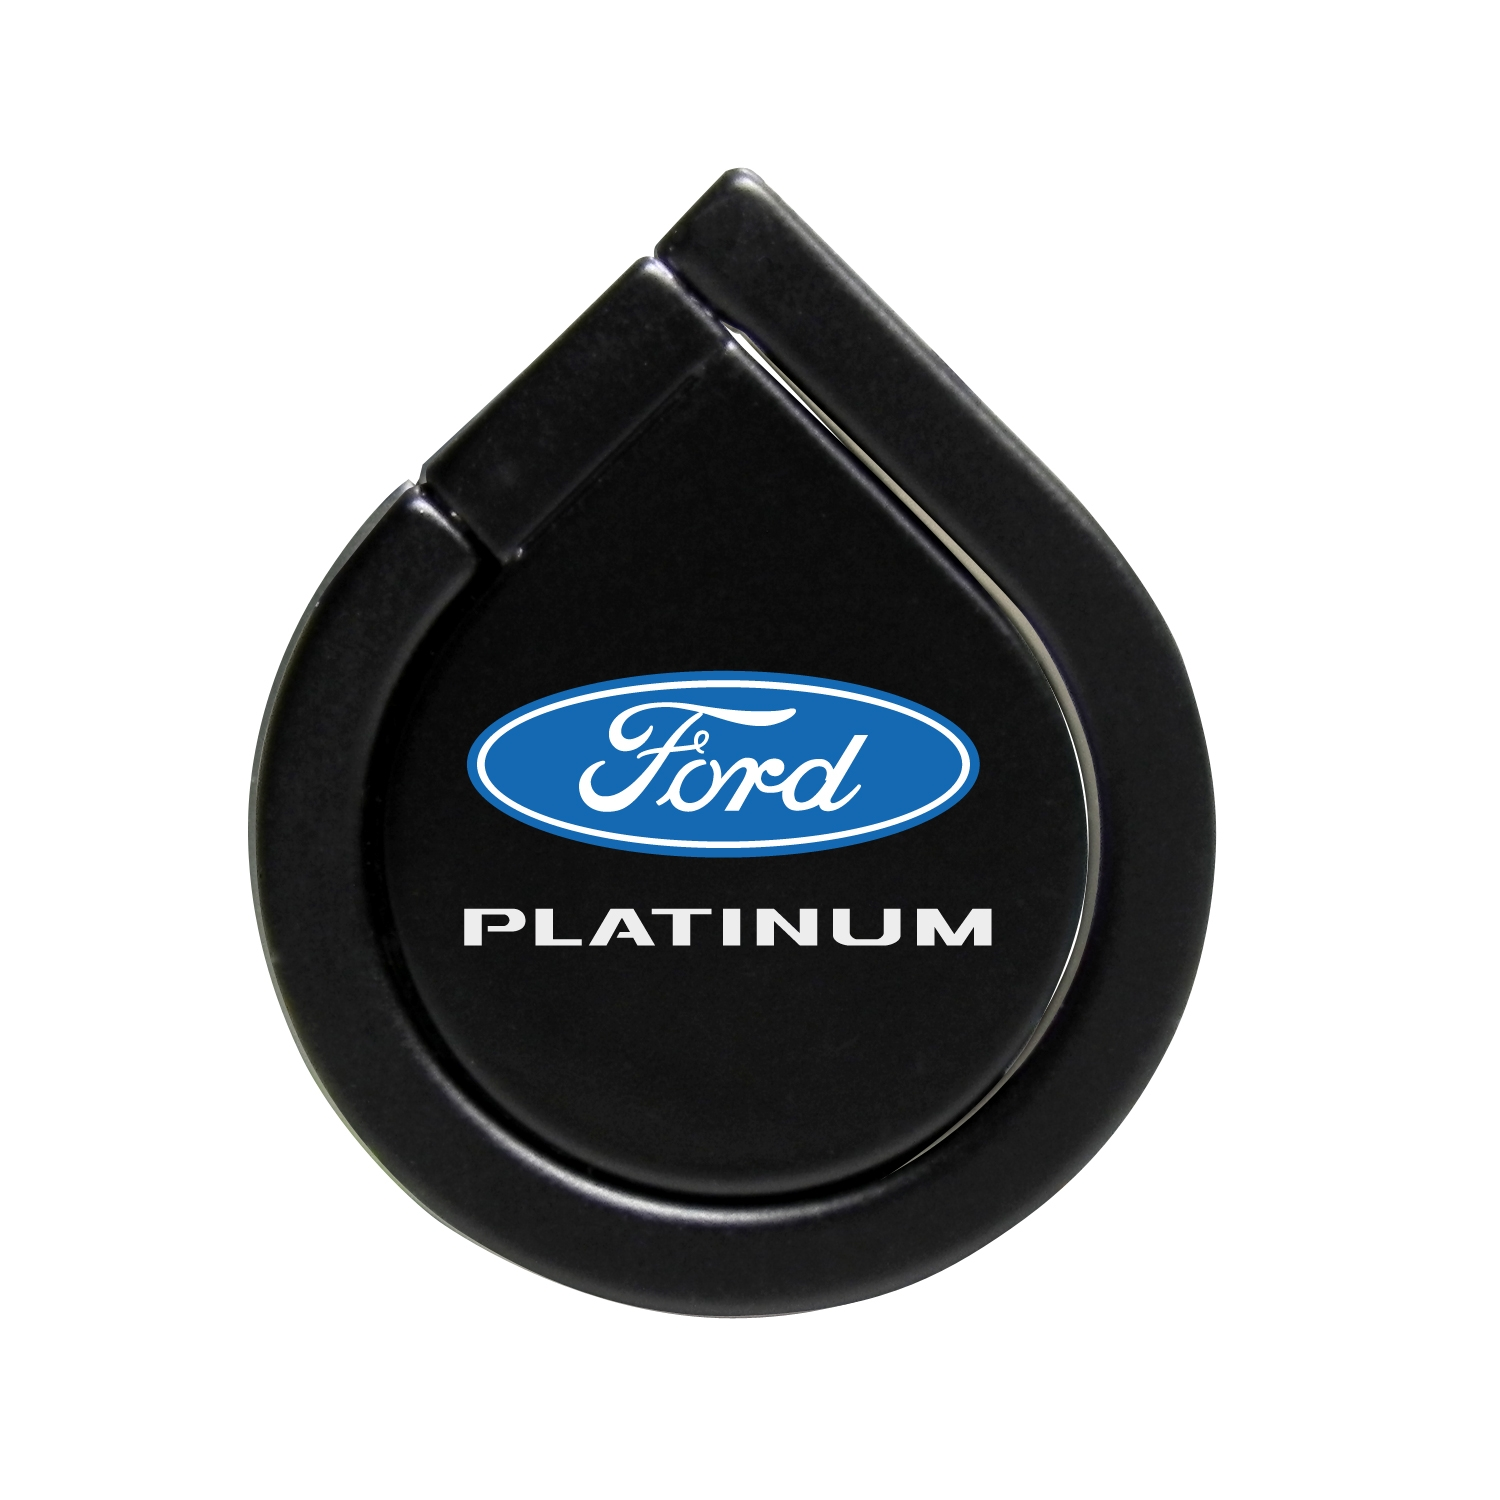 Ford F-150 Platinum Black 360 Degree Rotation Finger Ring Holder for Cell Phone